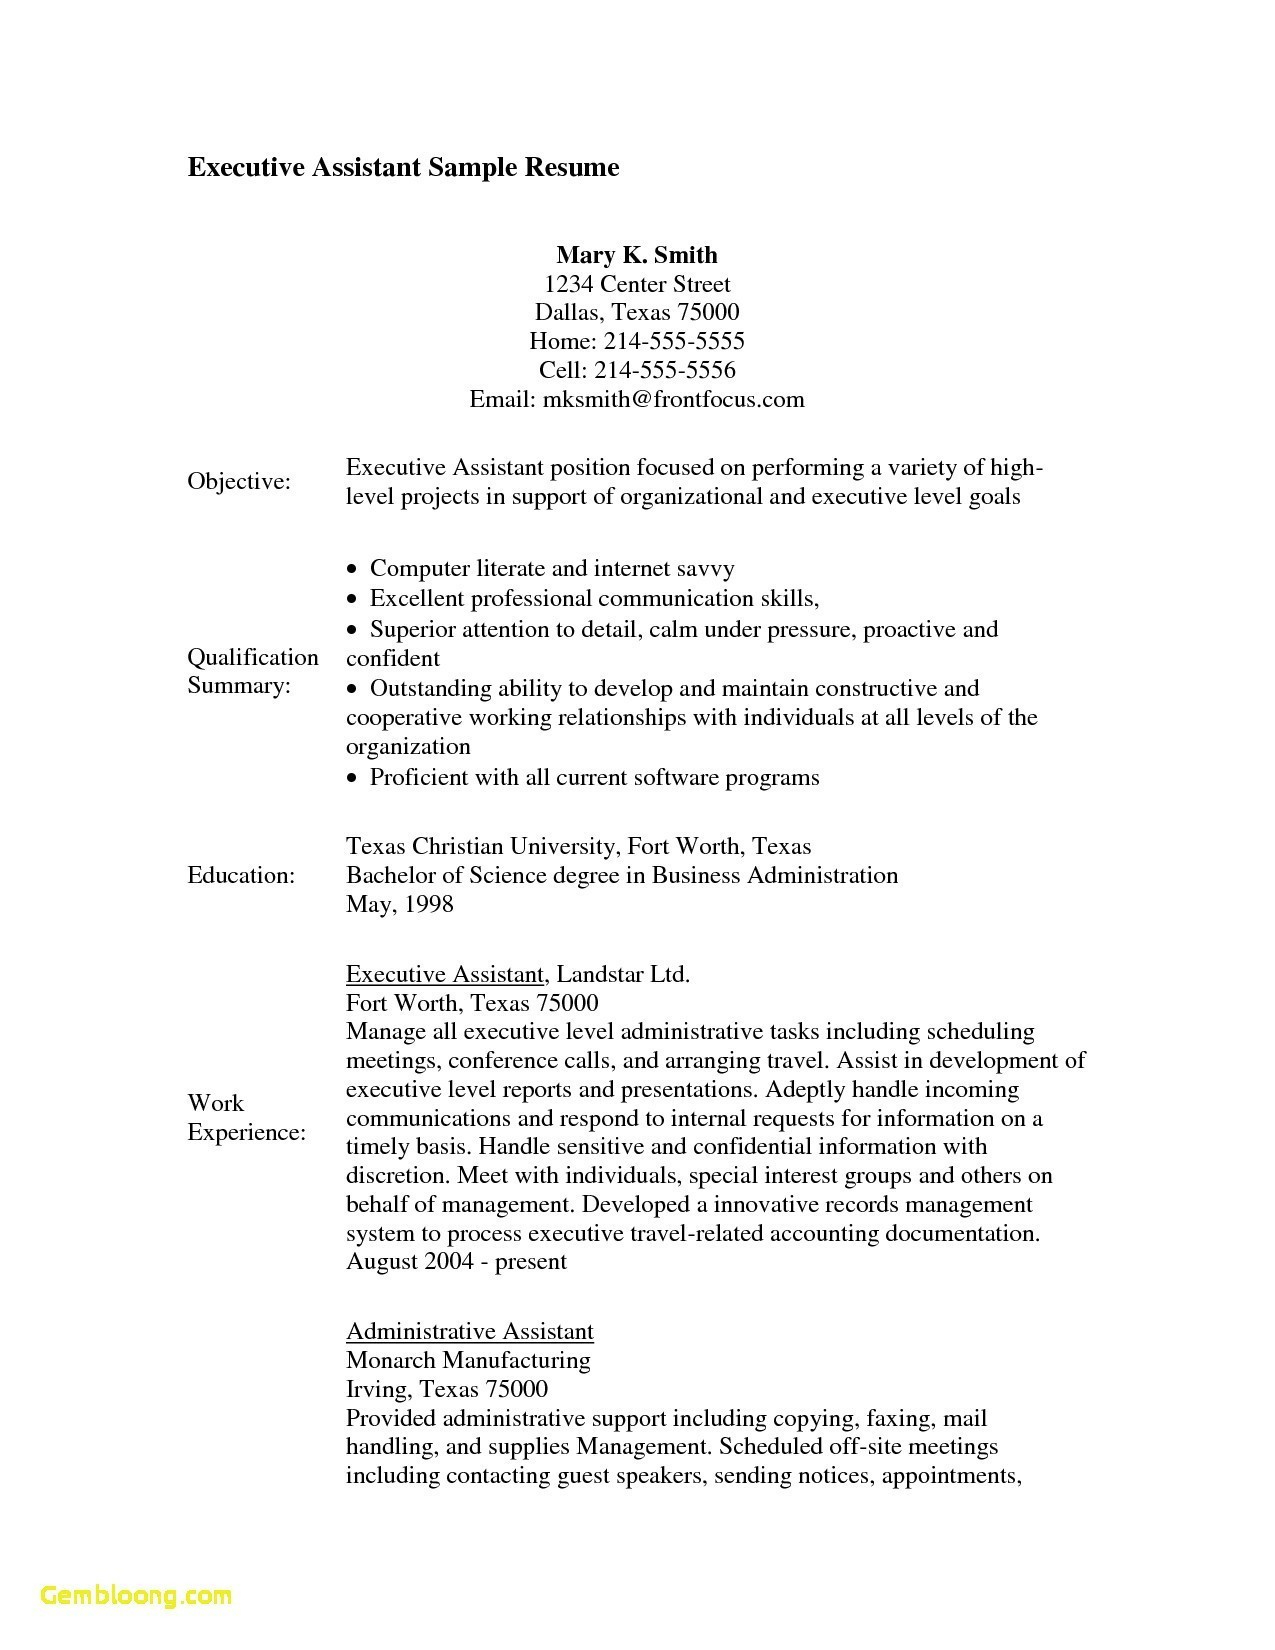 Ma Resume Template - Medical assistant Resume New Inspirational Medical assistant Resumes